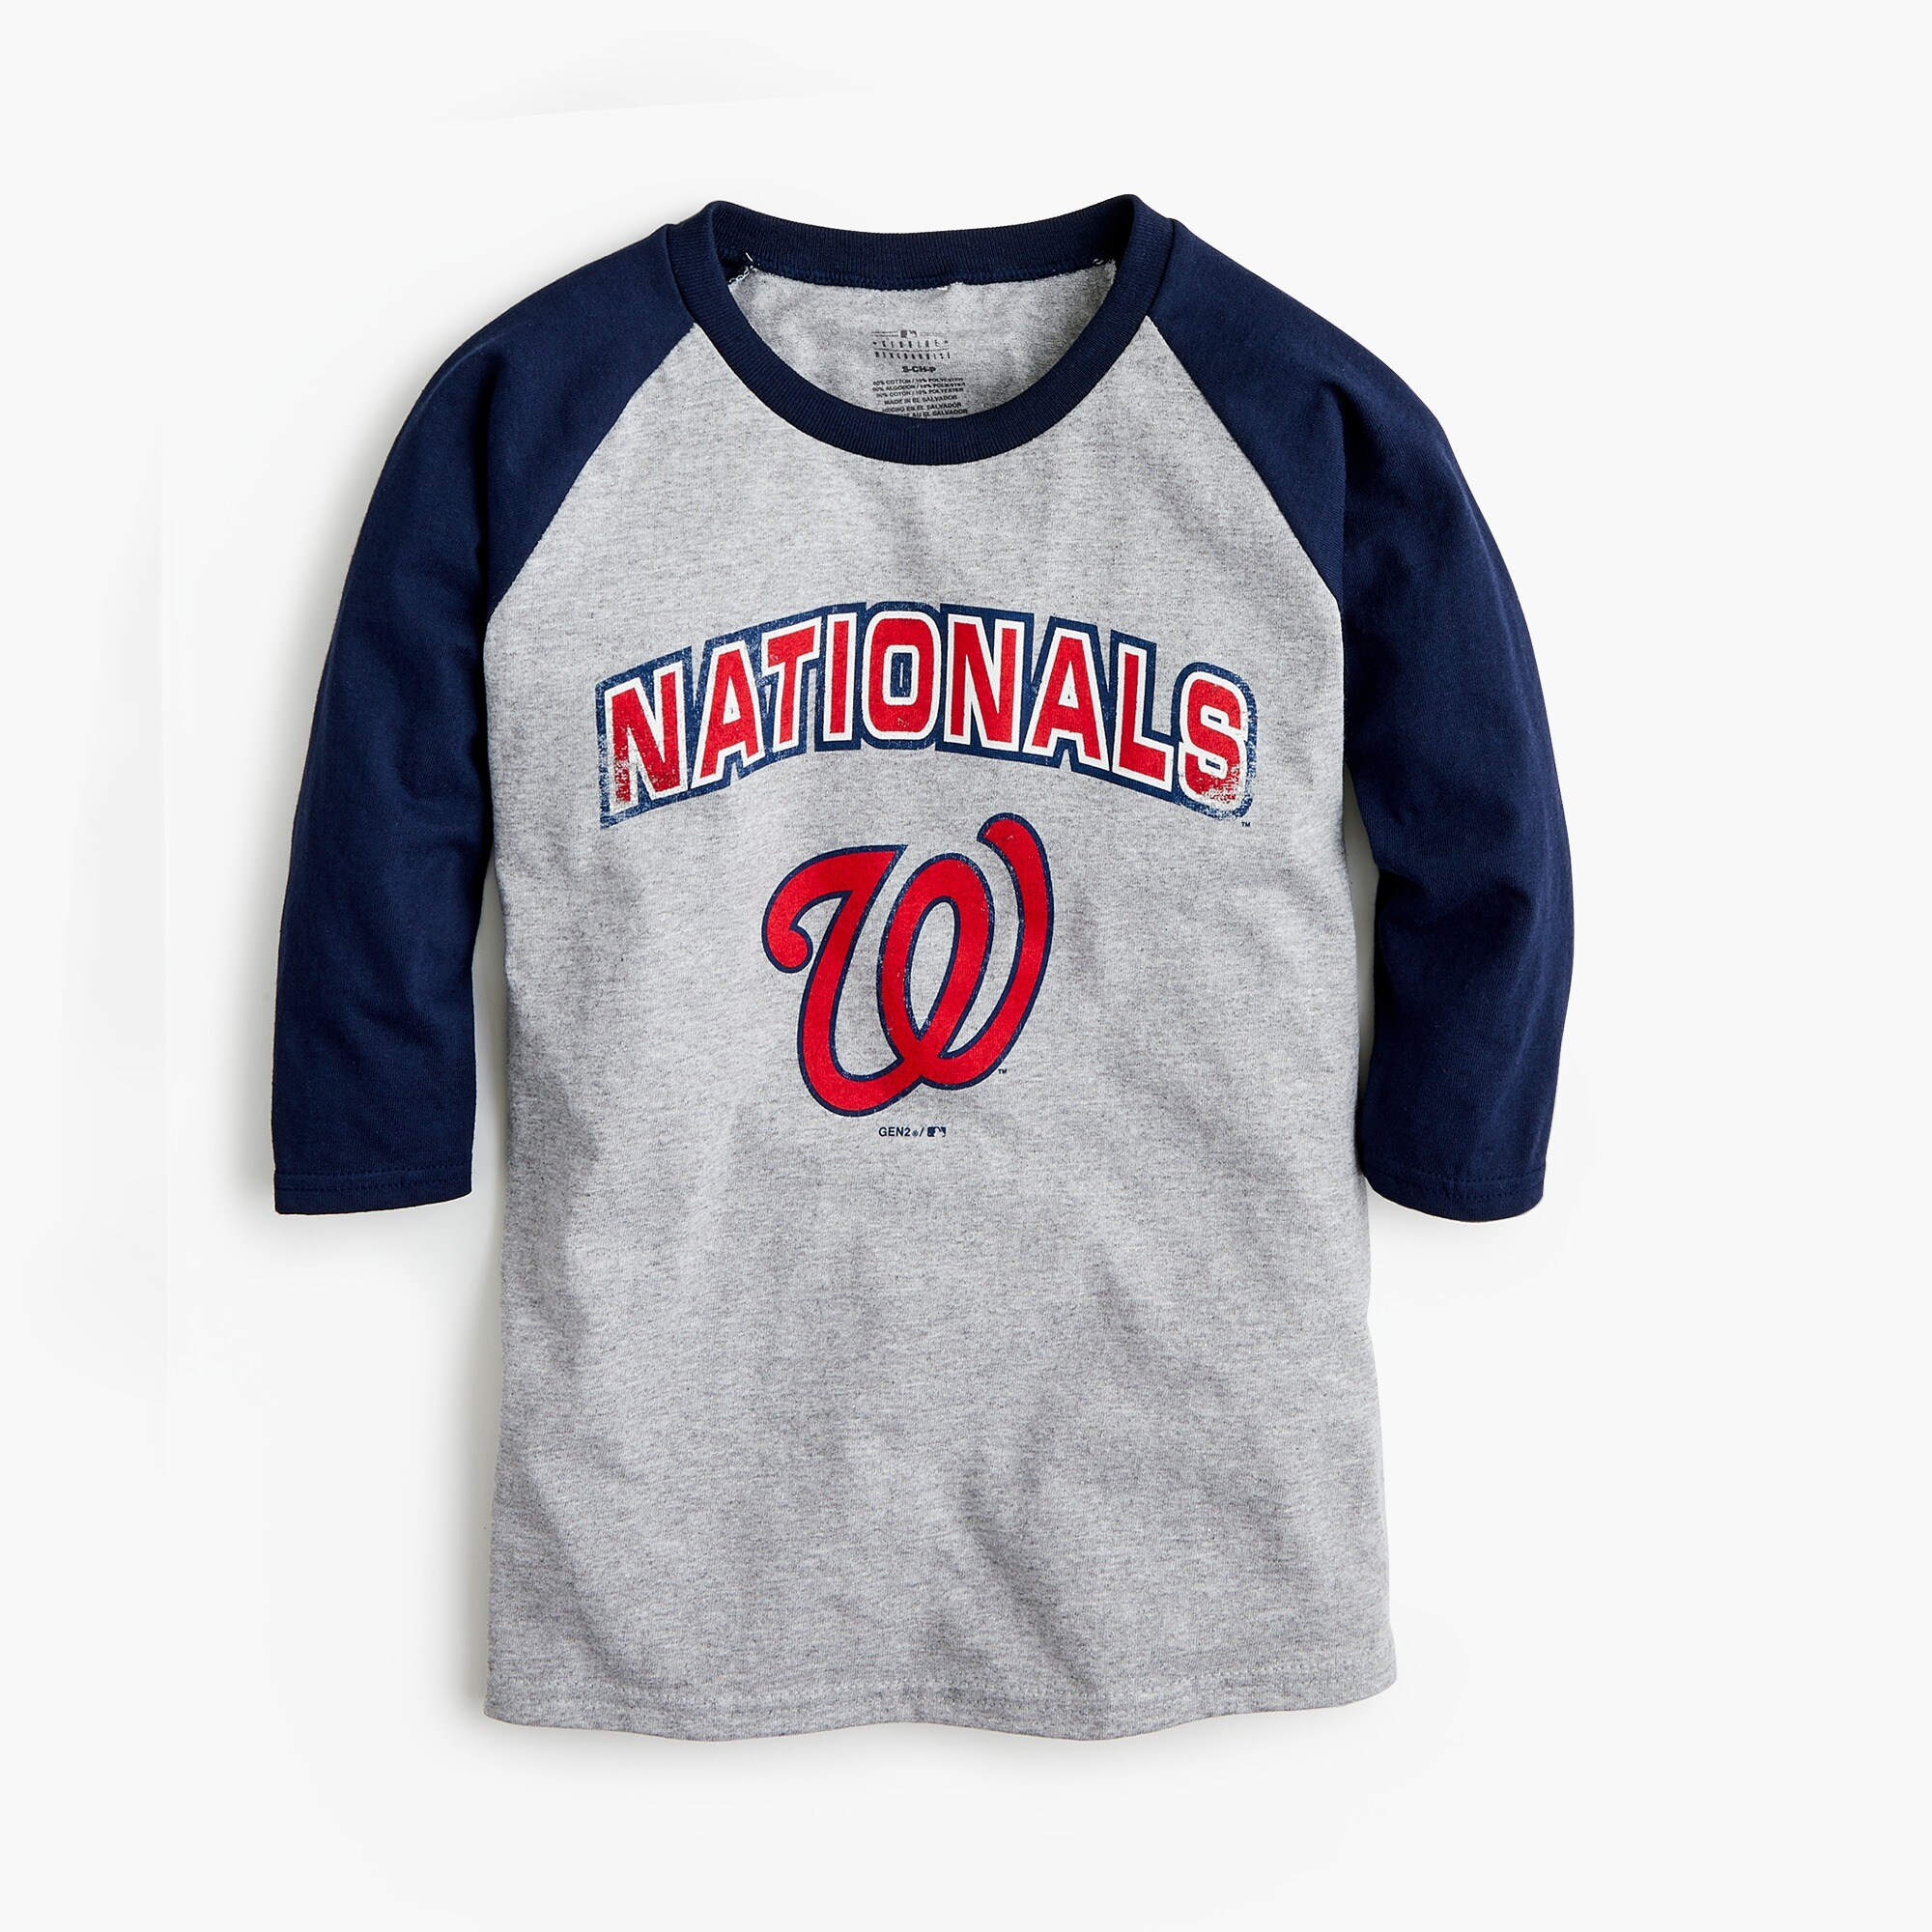 boys Kids' Washington Nationals baseball T-shirt